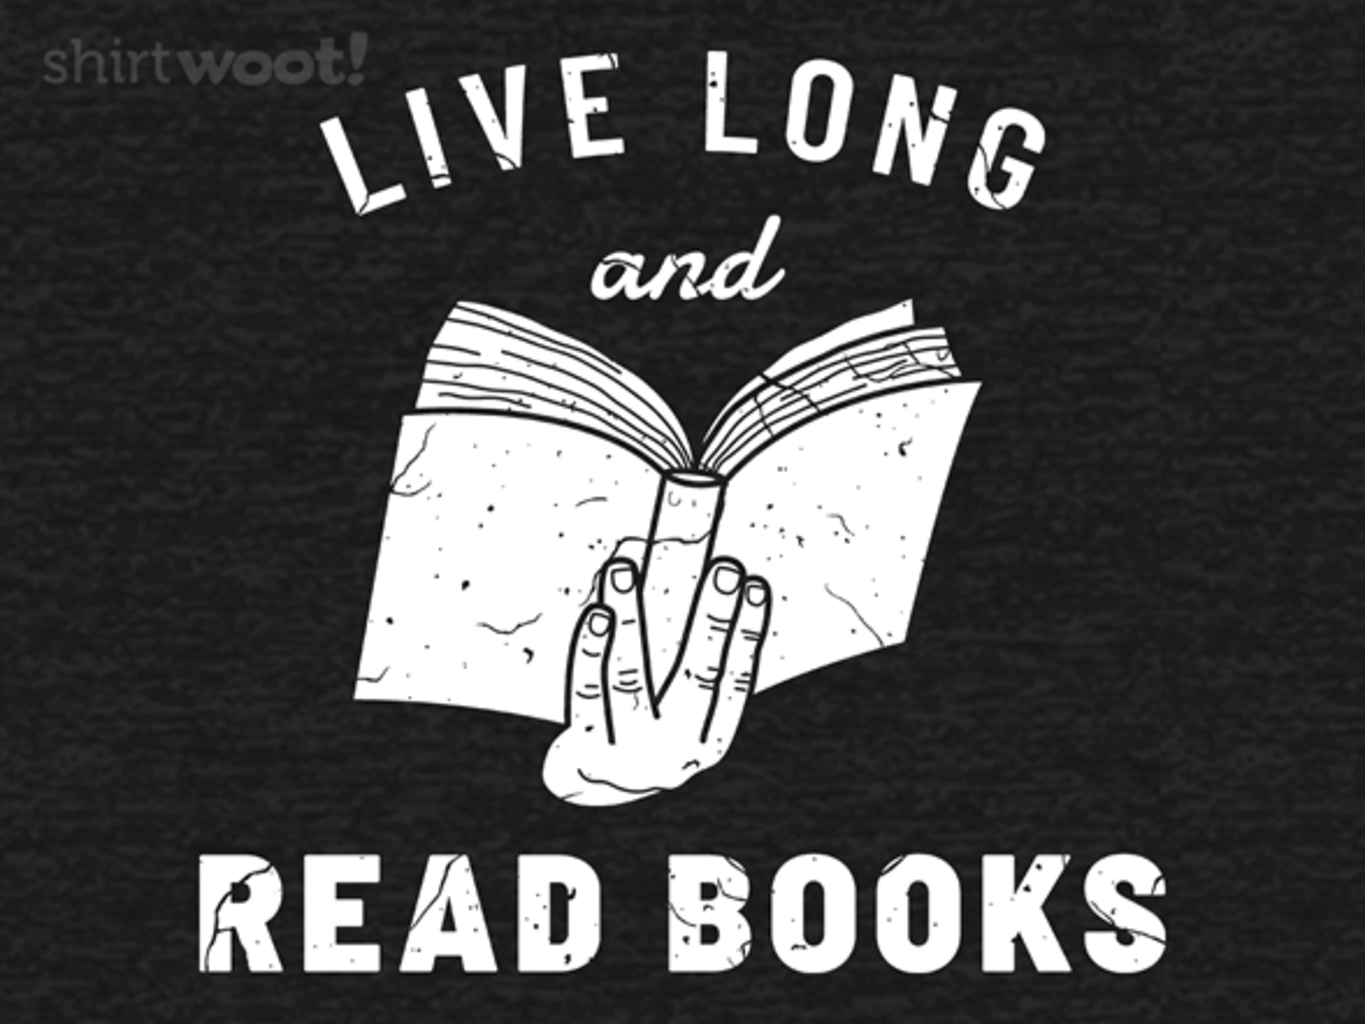 Woot!: Live Long and Read Books - Remix